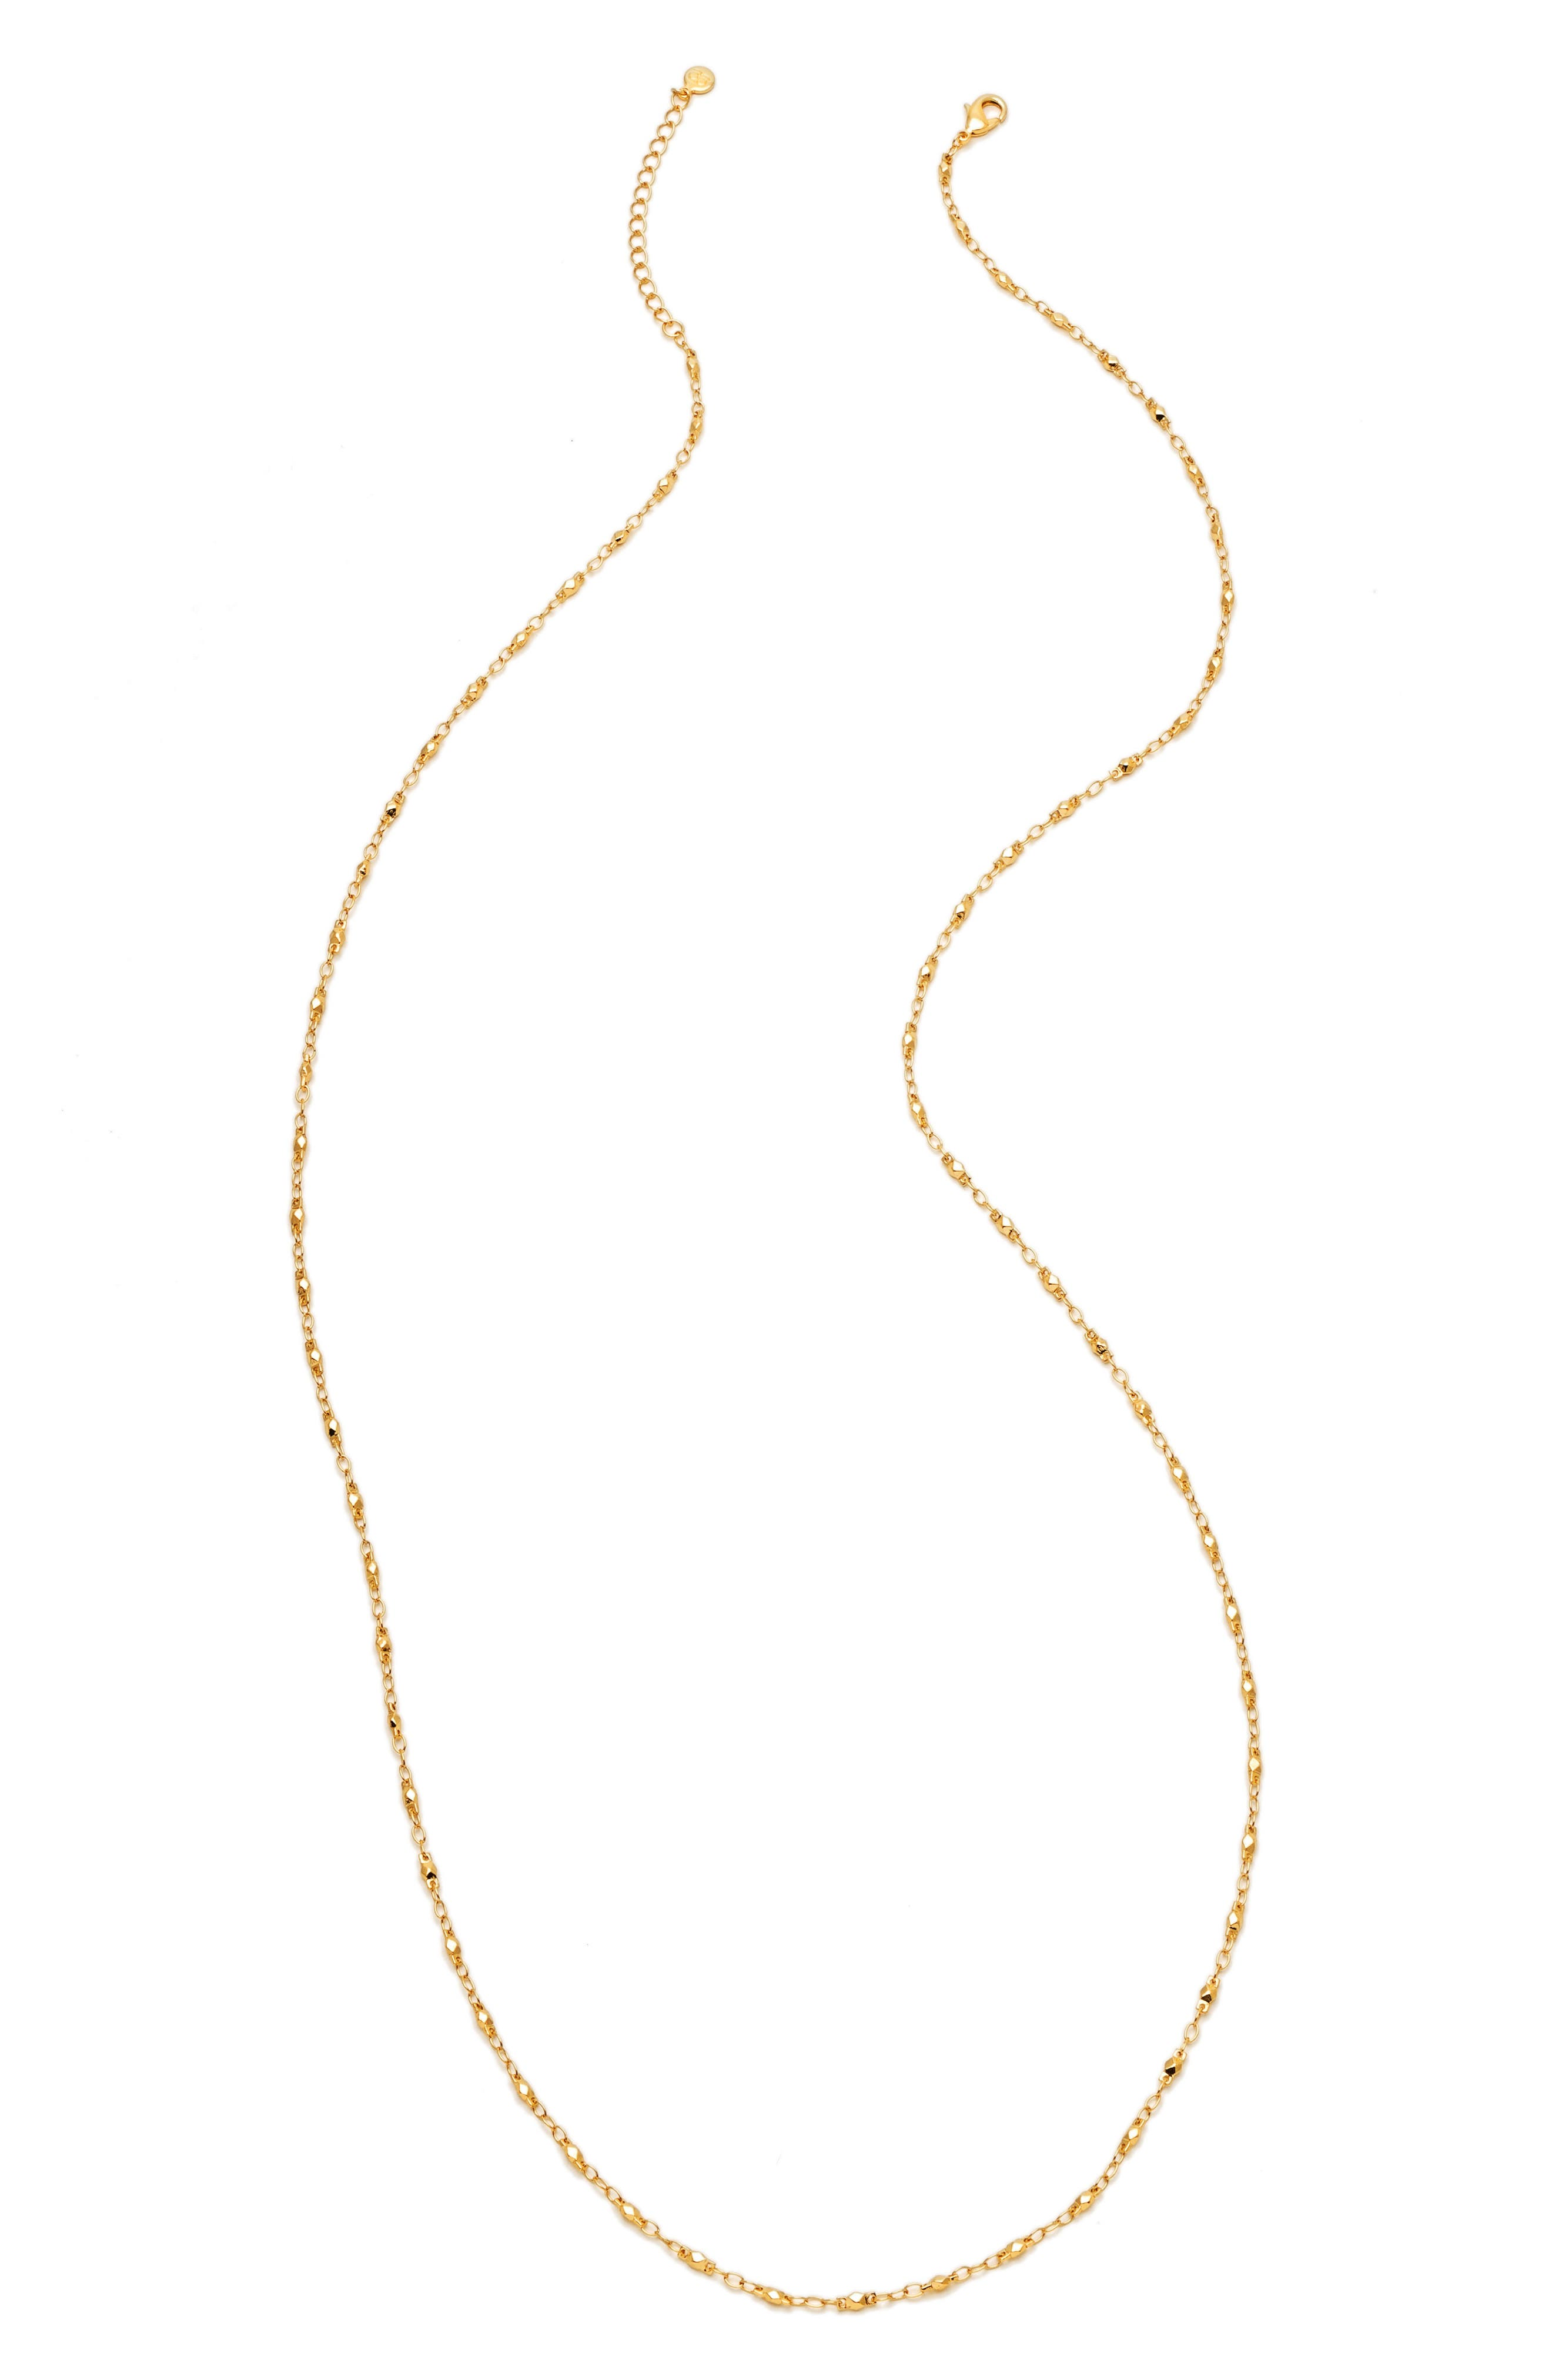 Multistrand Beaded Necklace,                             Main thumbnail 1, color,                             Gold